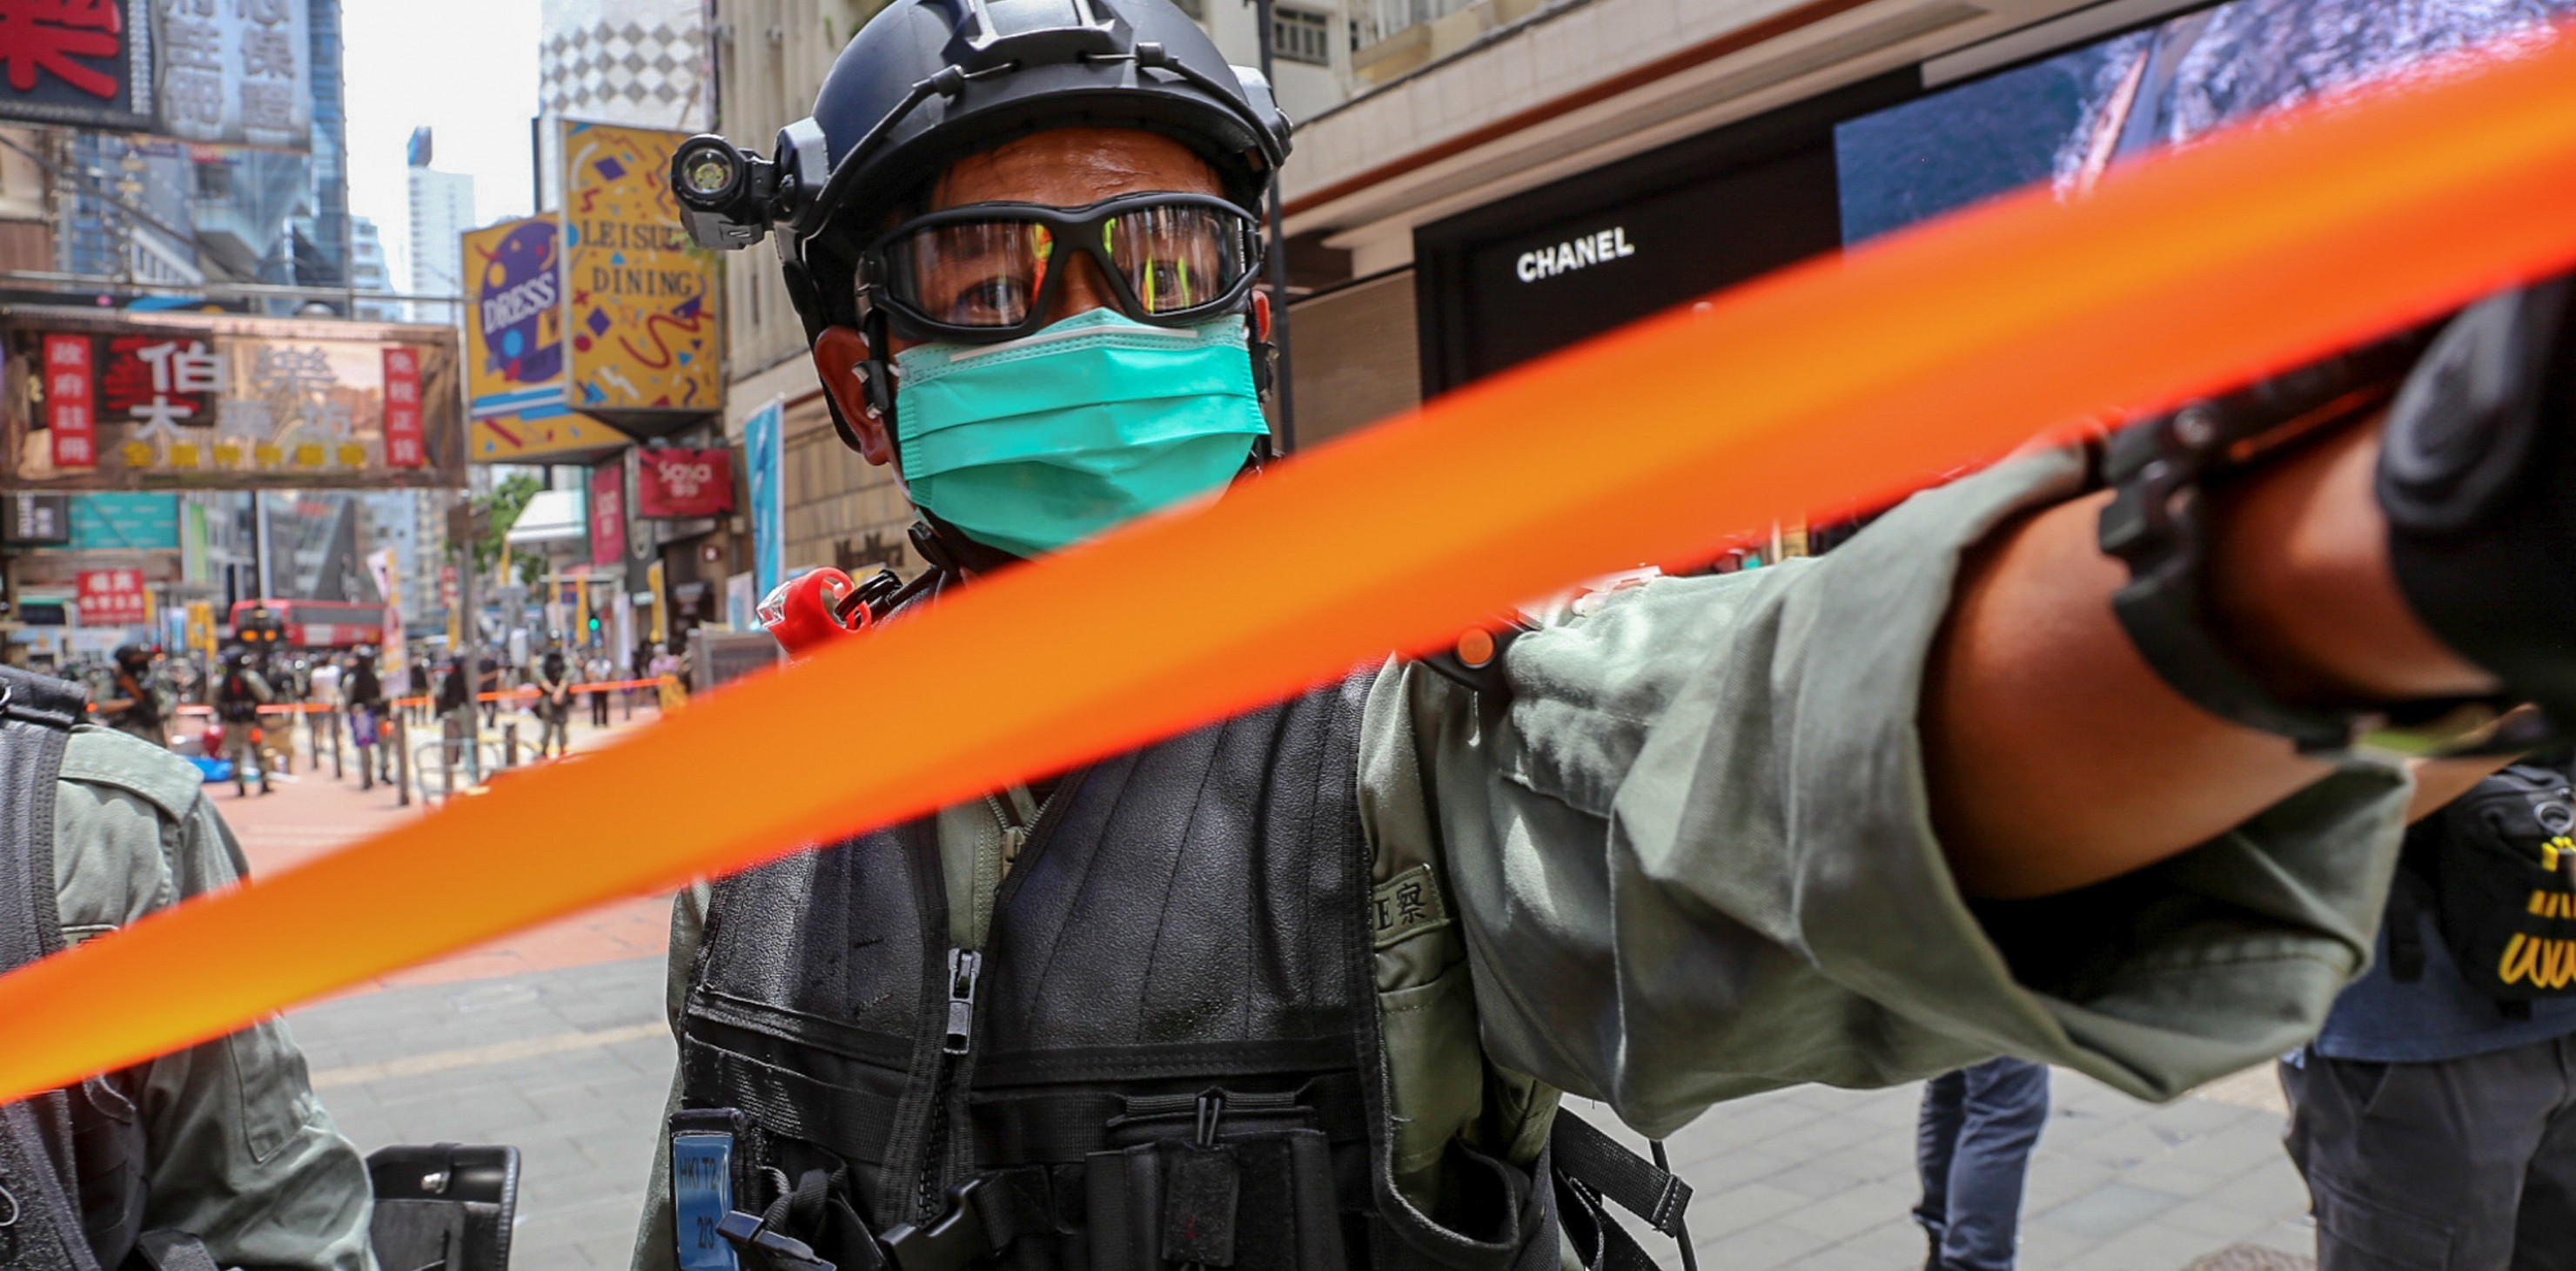 Policy Cordon off area with orange tape in Hong Kong